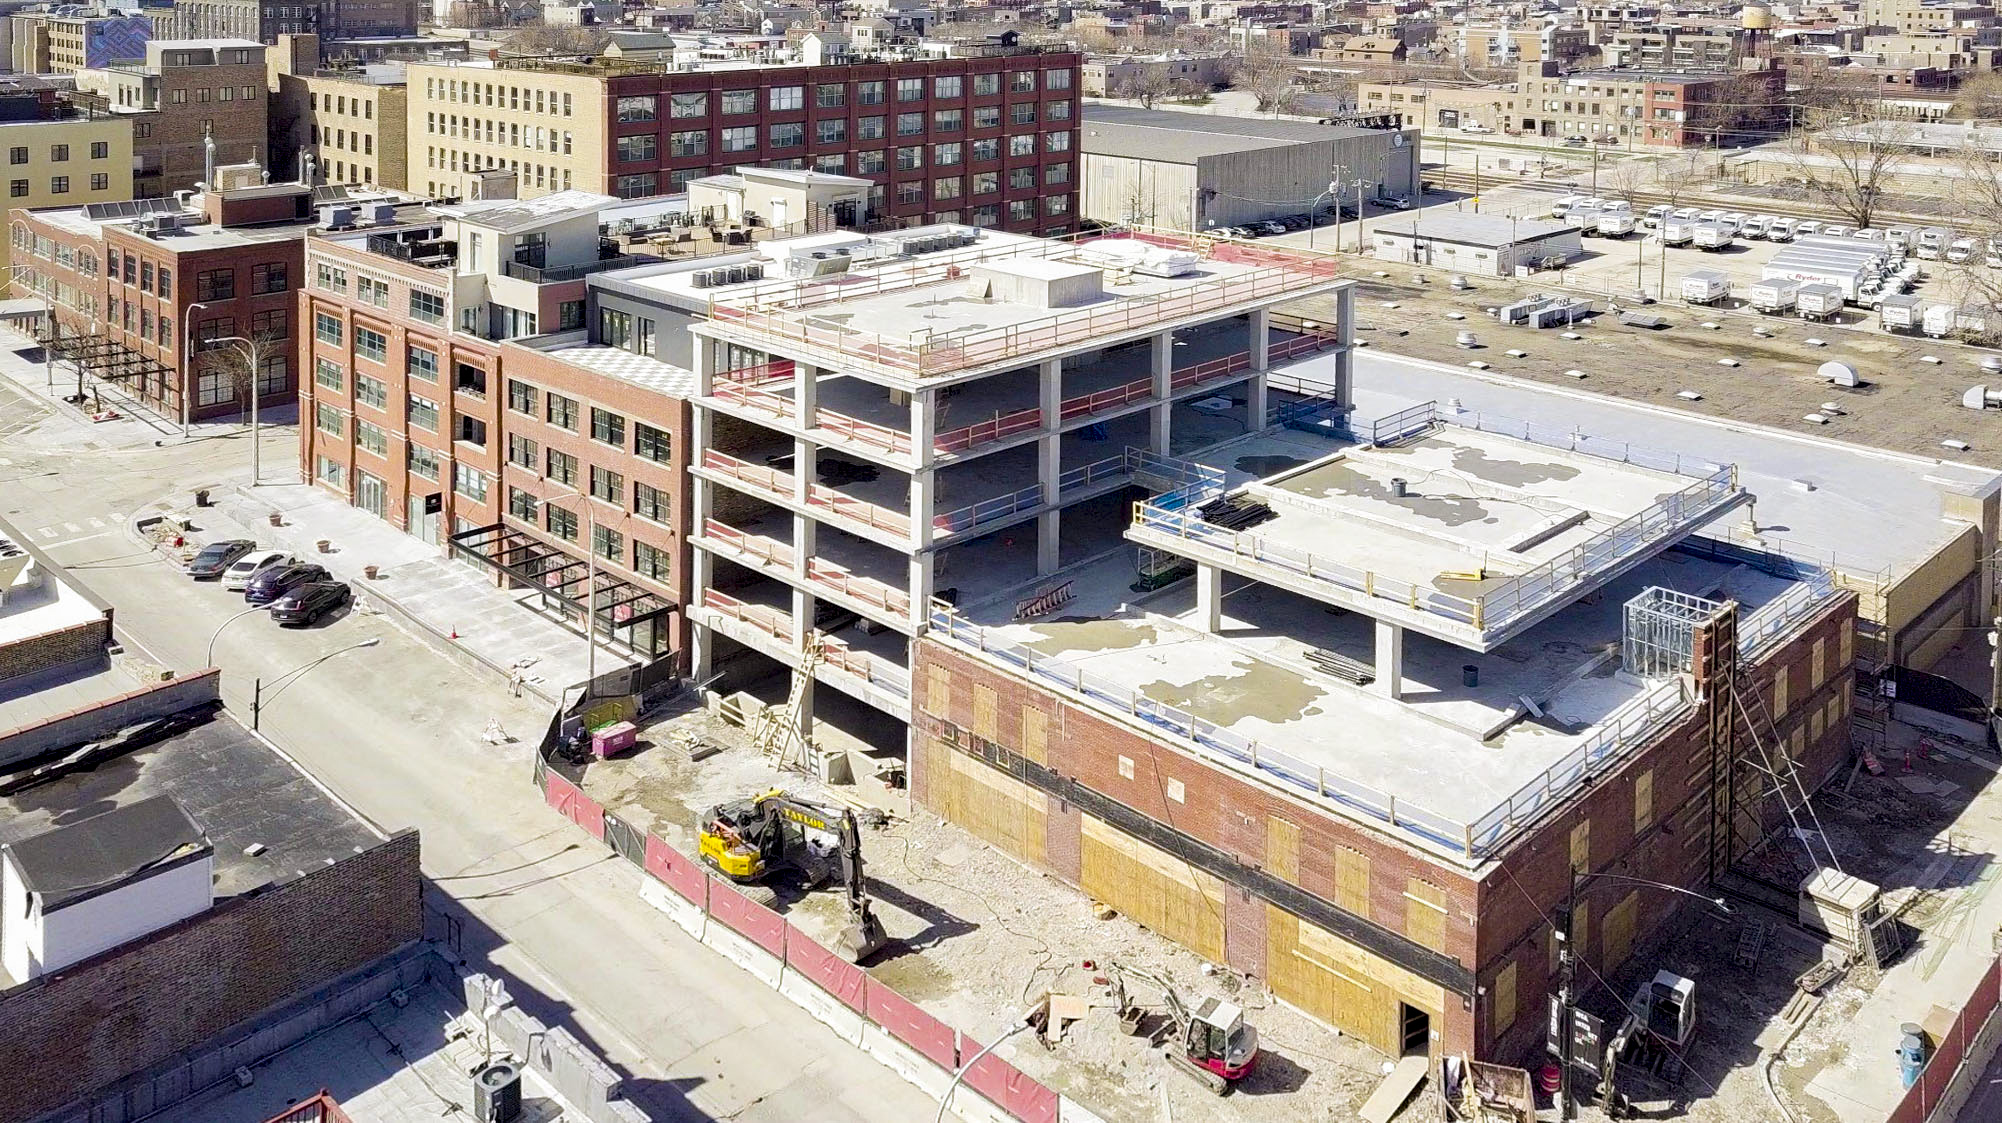 Construction Tops Out at 1100 W. Fulton, a Five-Story, Single-Tenant, Mixed-Use, Commercial Building for Fulton St. Companies and Herman Miller